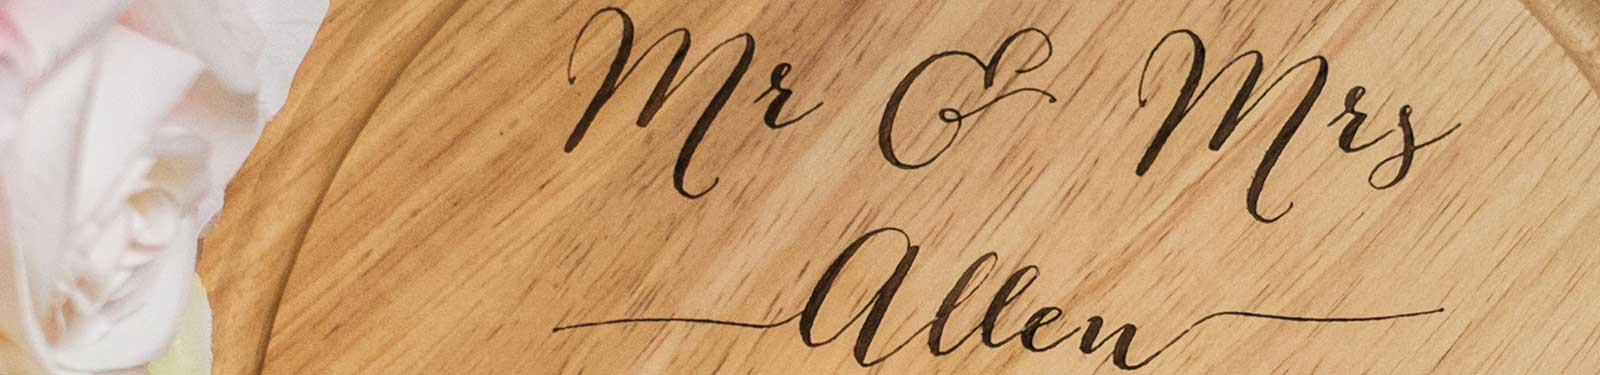 Personalised Wedding Gifts from Lindsay Interiors